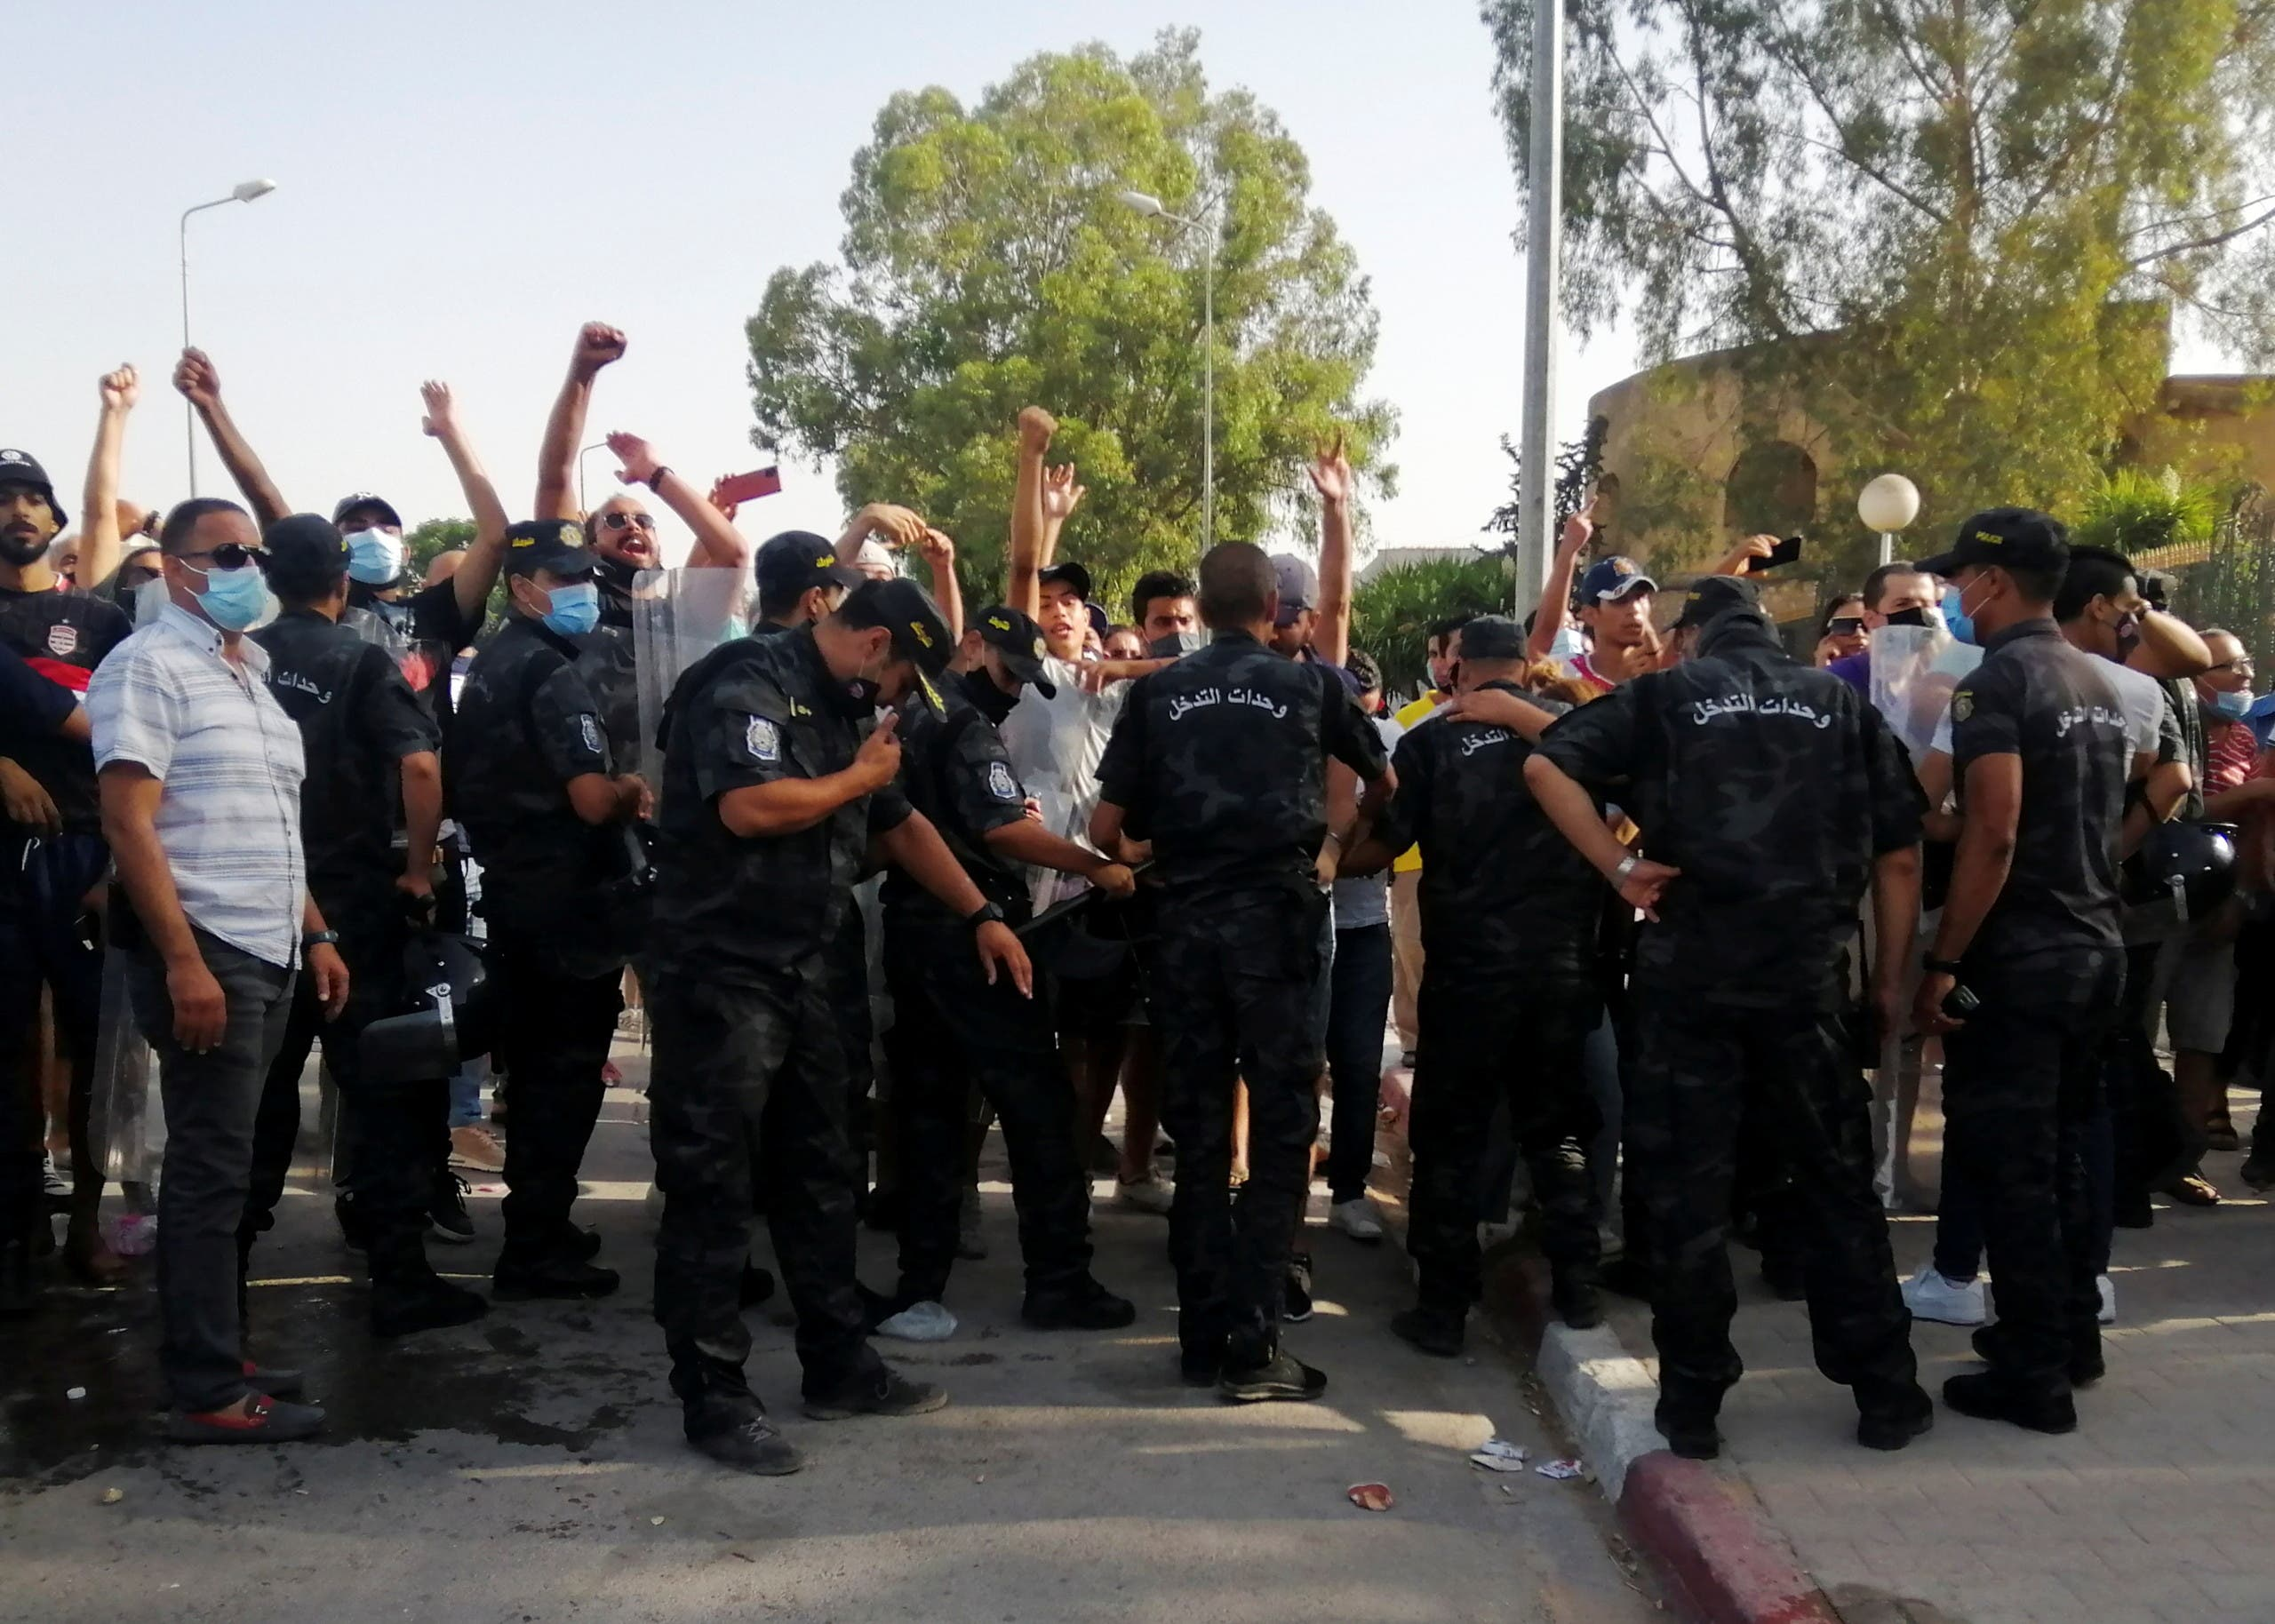 Police officers stand guard as supporters of Tunisia's biggest political party, the moderate Islamist Ennahda, gather outside the parliament building in Tunis, Tunisia July 26, 2021. (Reuters)